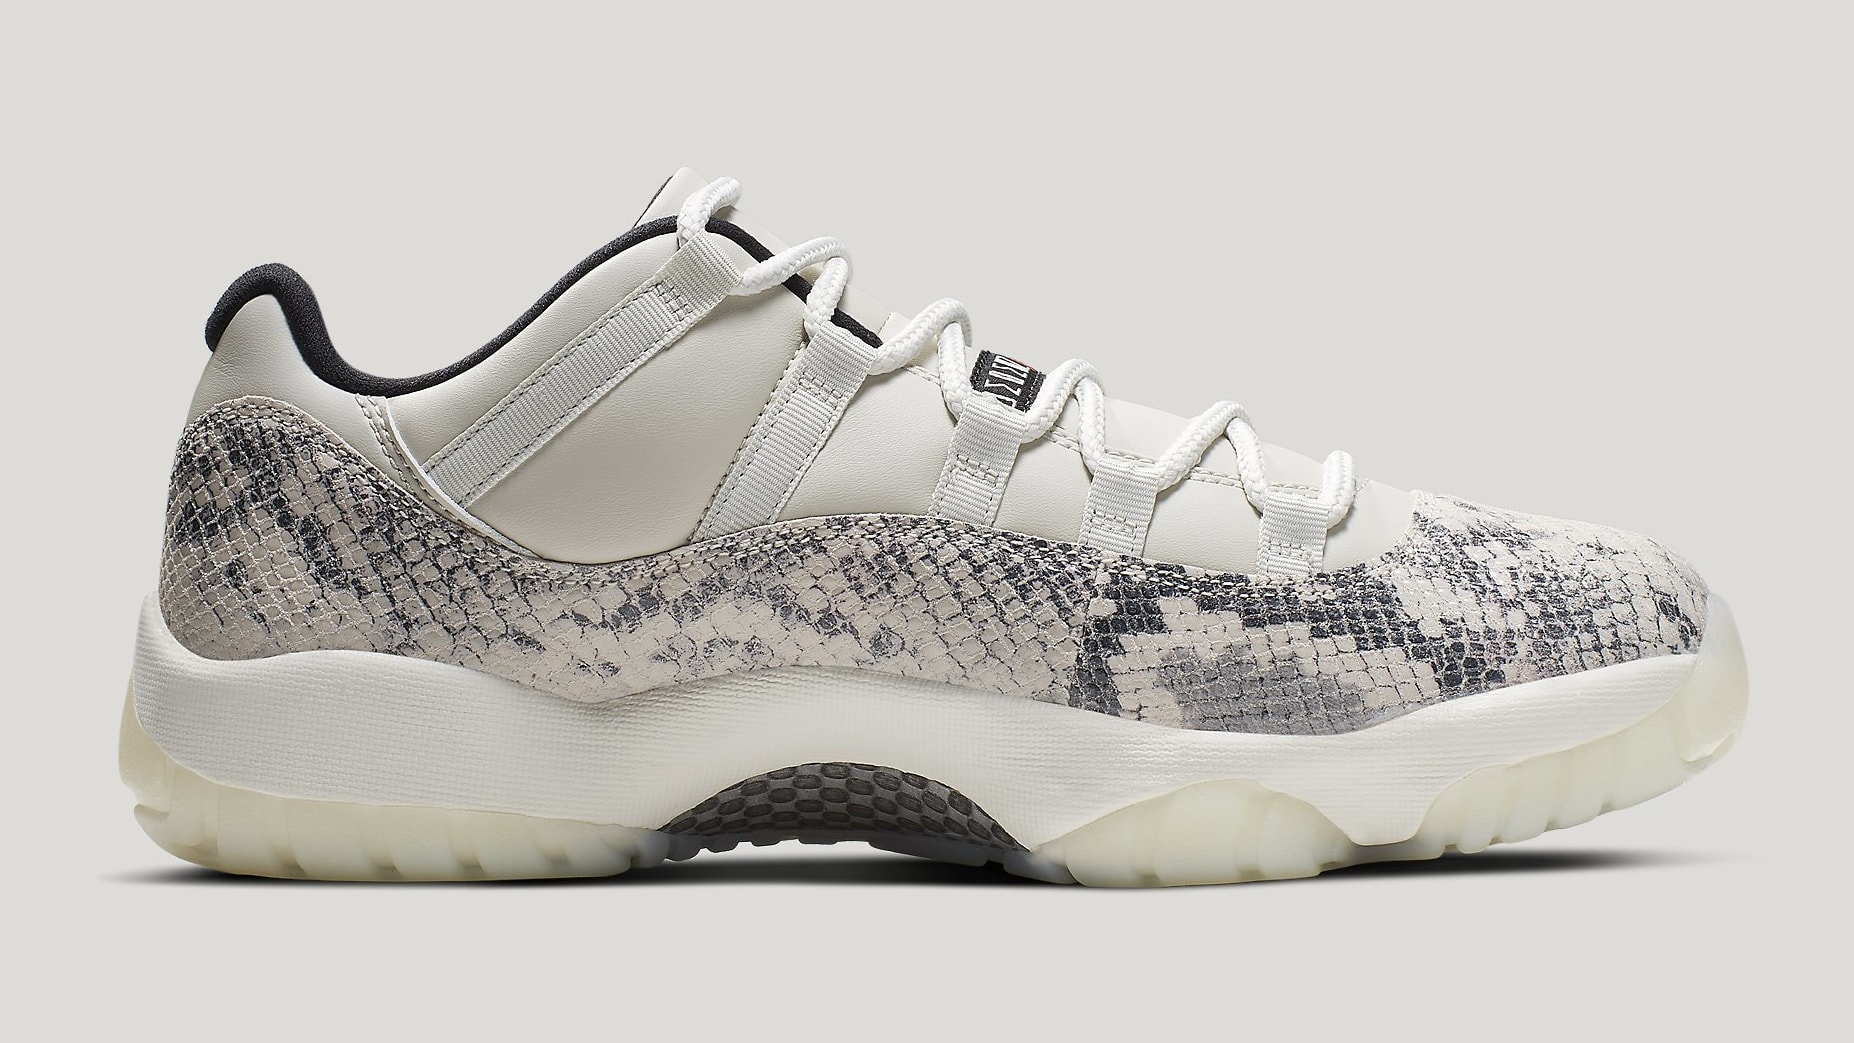 promo code 9fef3 25aab Image via Nike Air Jordan 11 XI Low Light Bone Release Date CD6846-002  Medial